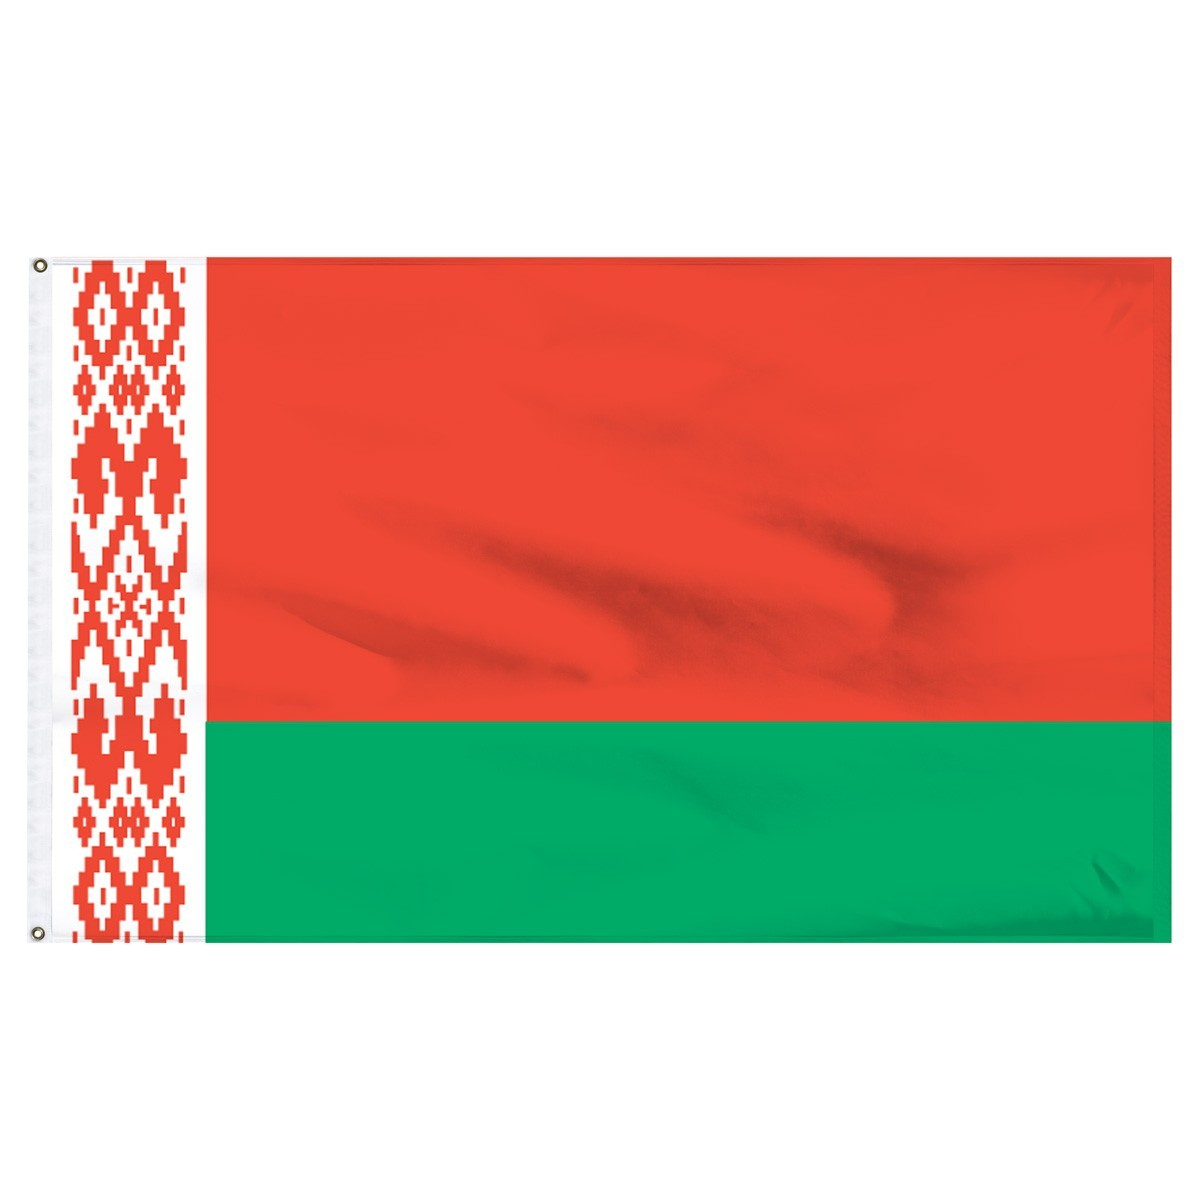 Belarus 3' x 5' Outdoor Nylon Flag